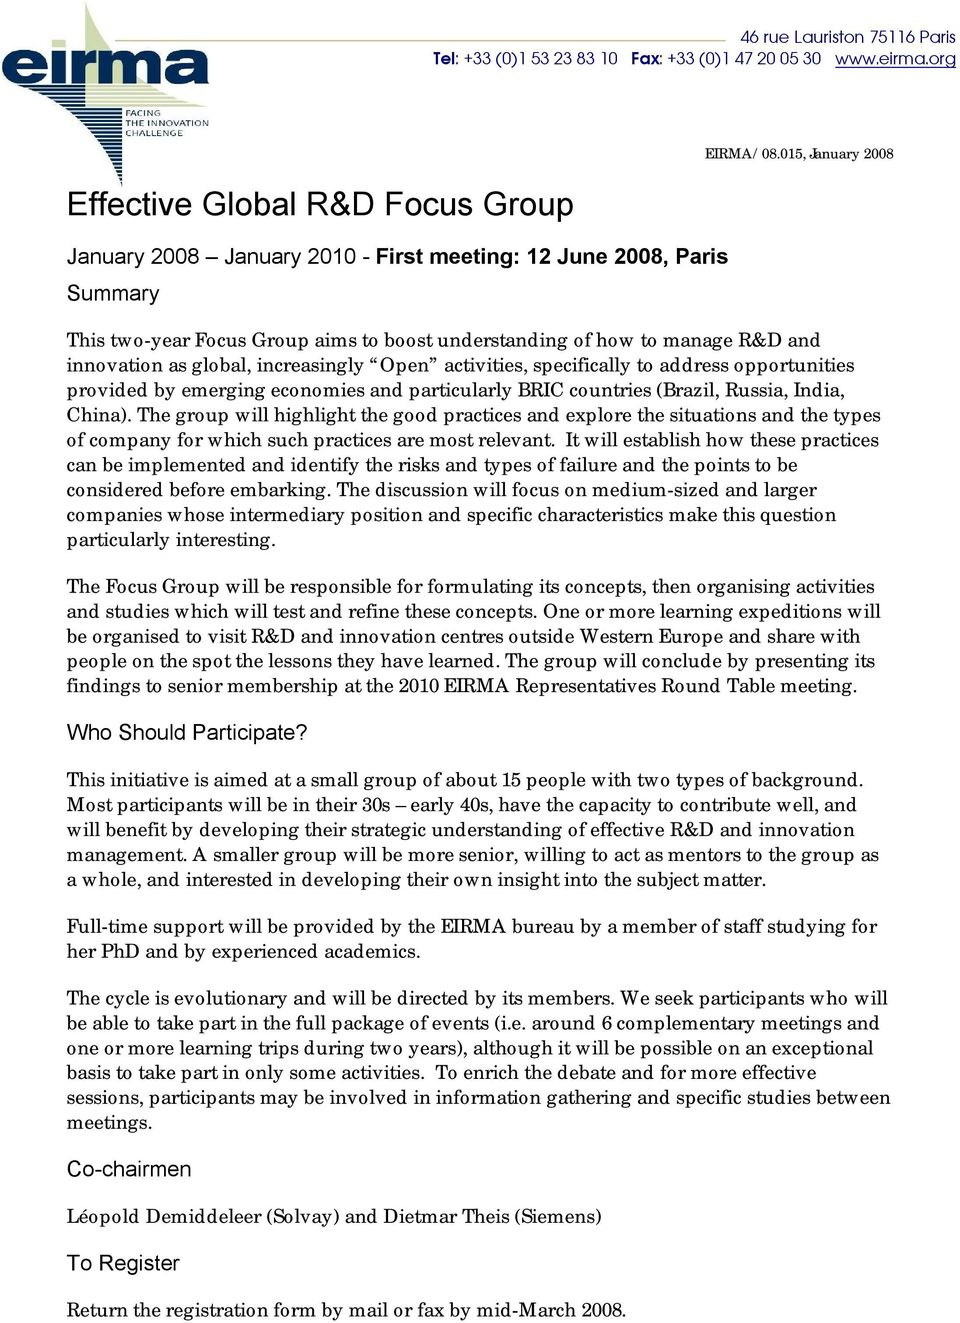 015, January 2008 This two-year Focus Group aims to boost understanding of how to manage R&D and innovation as global, increasingly Open activities, specifically to address opportunities provided by